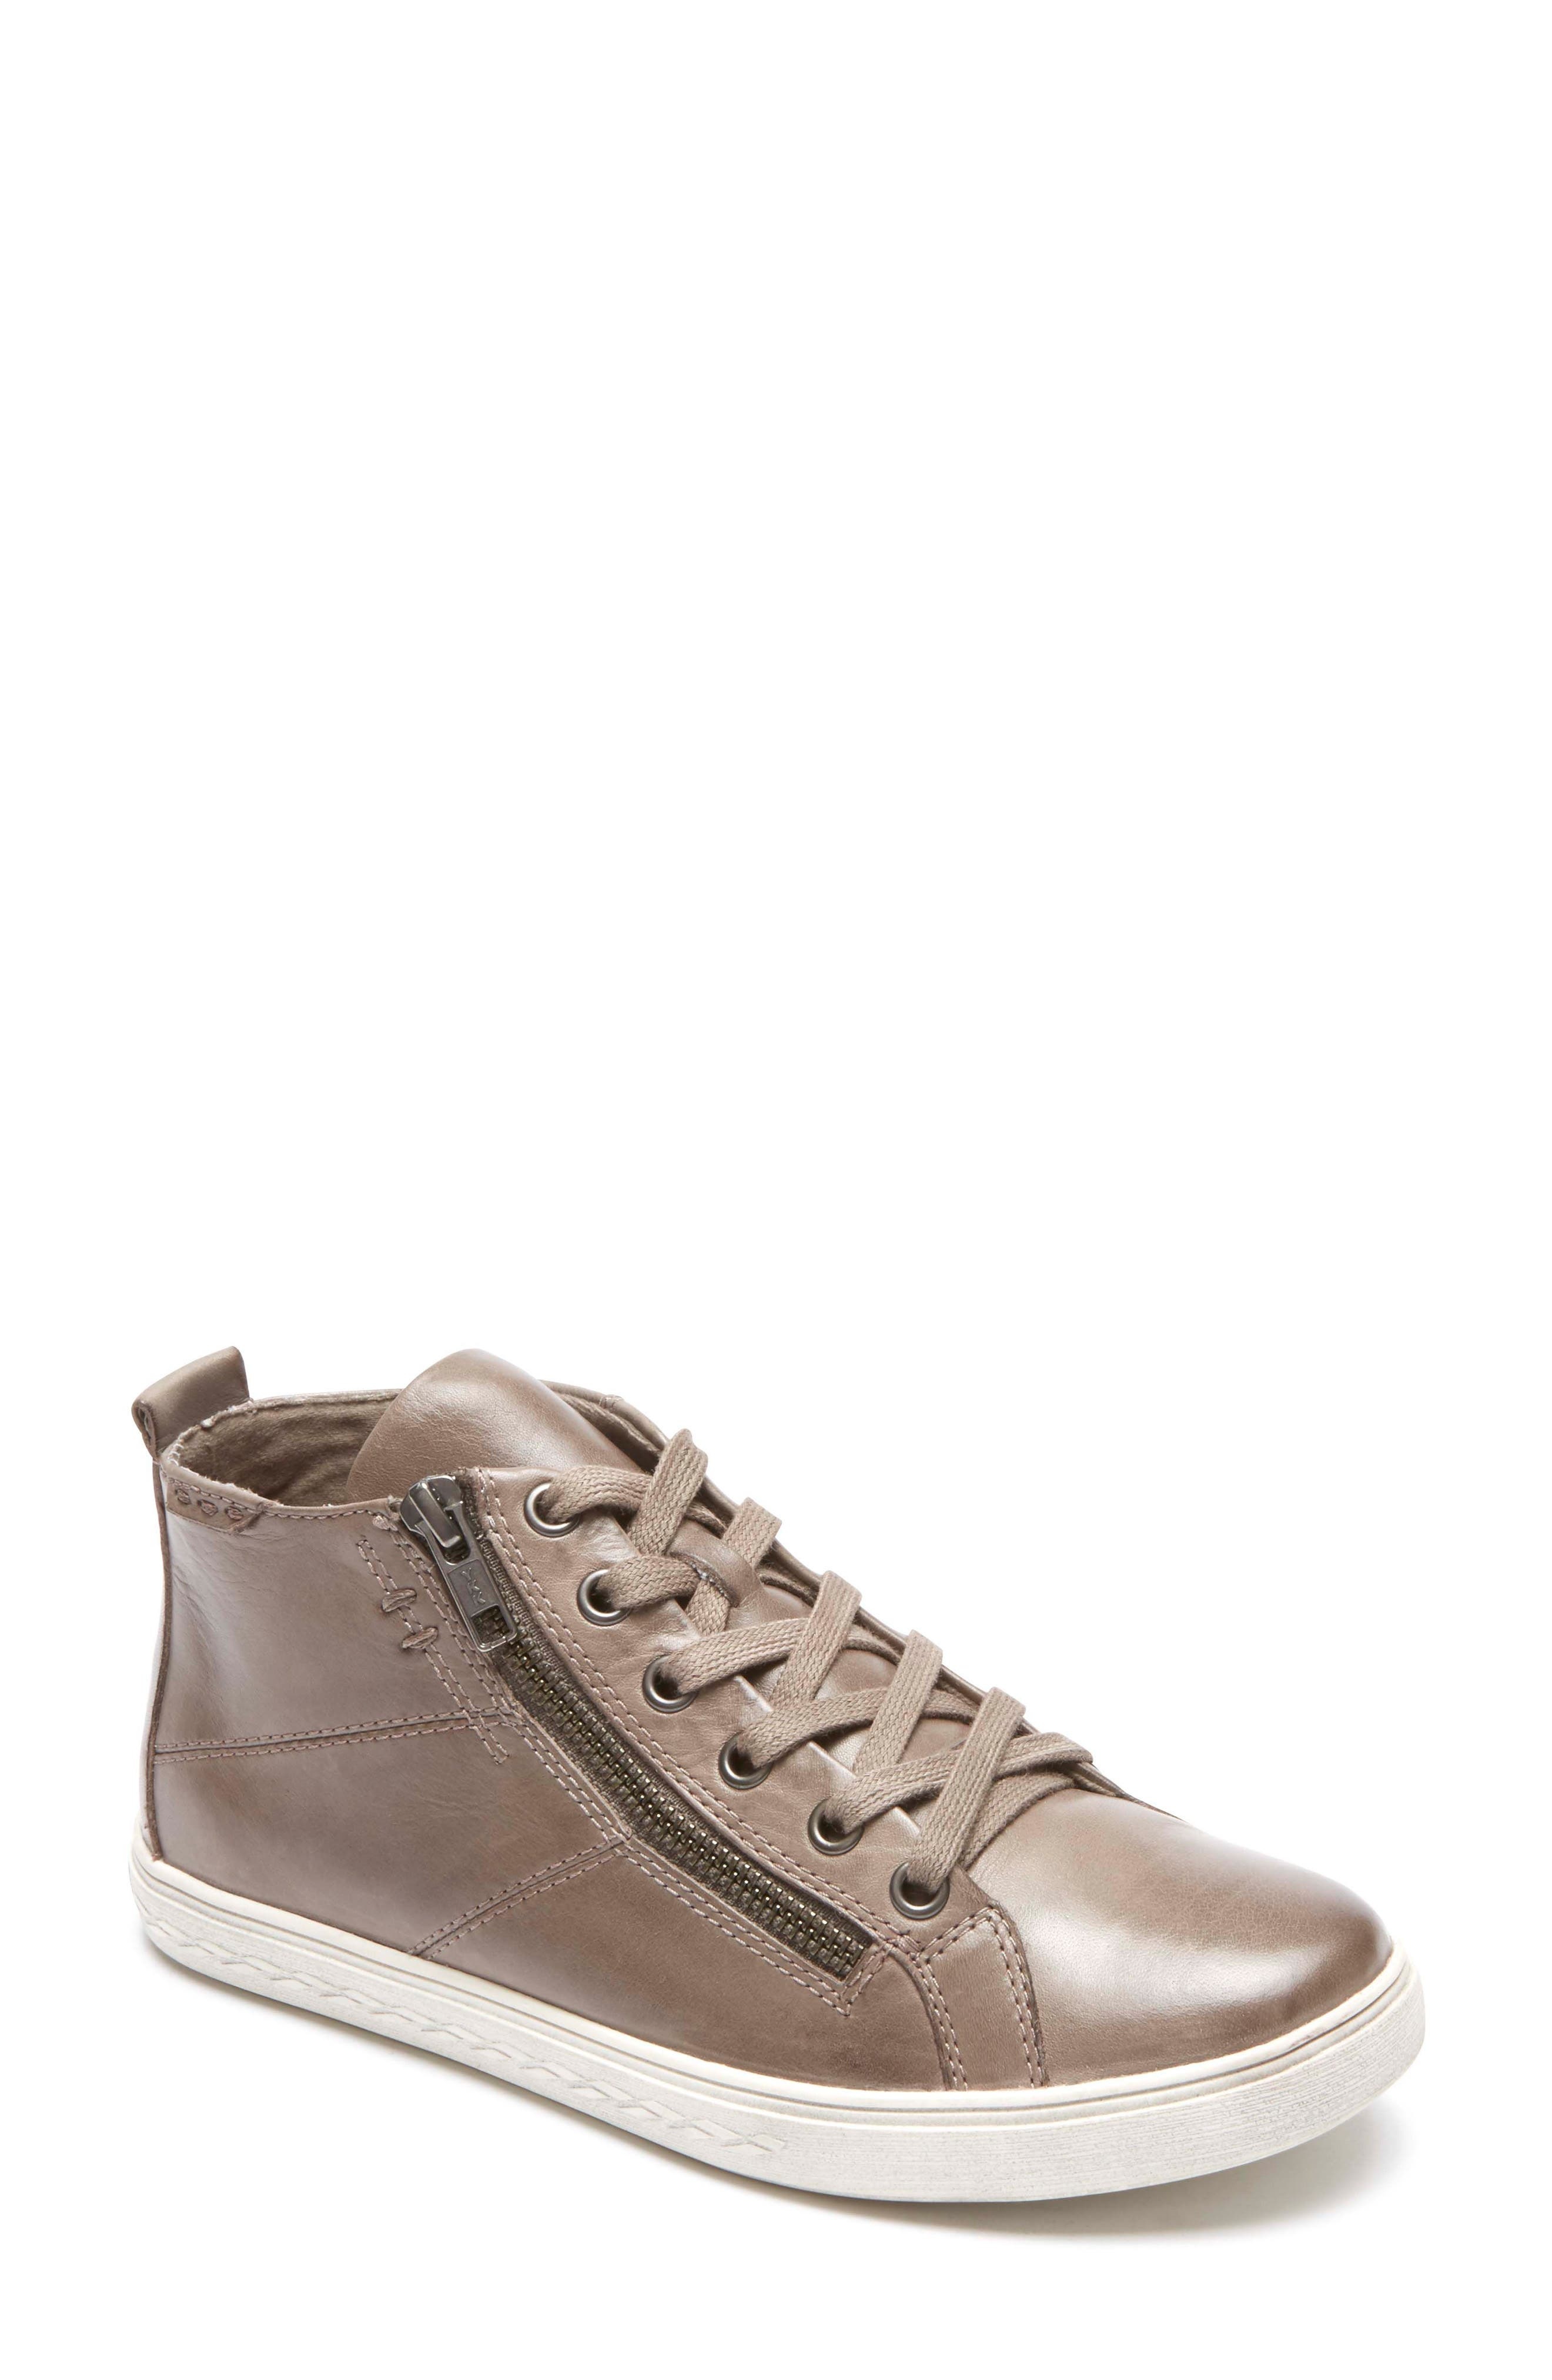 rockport high top shoes